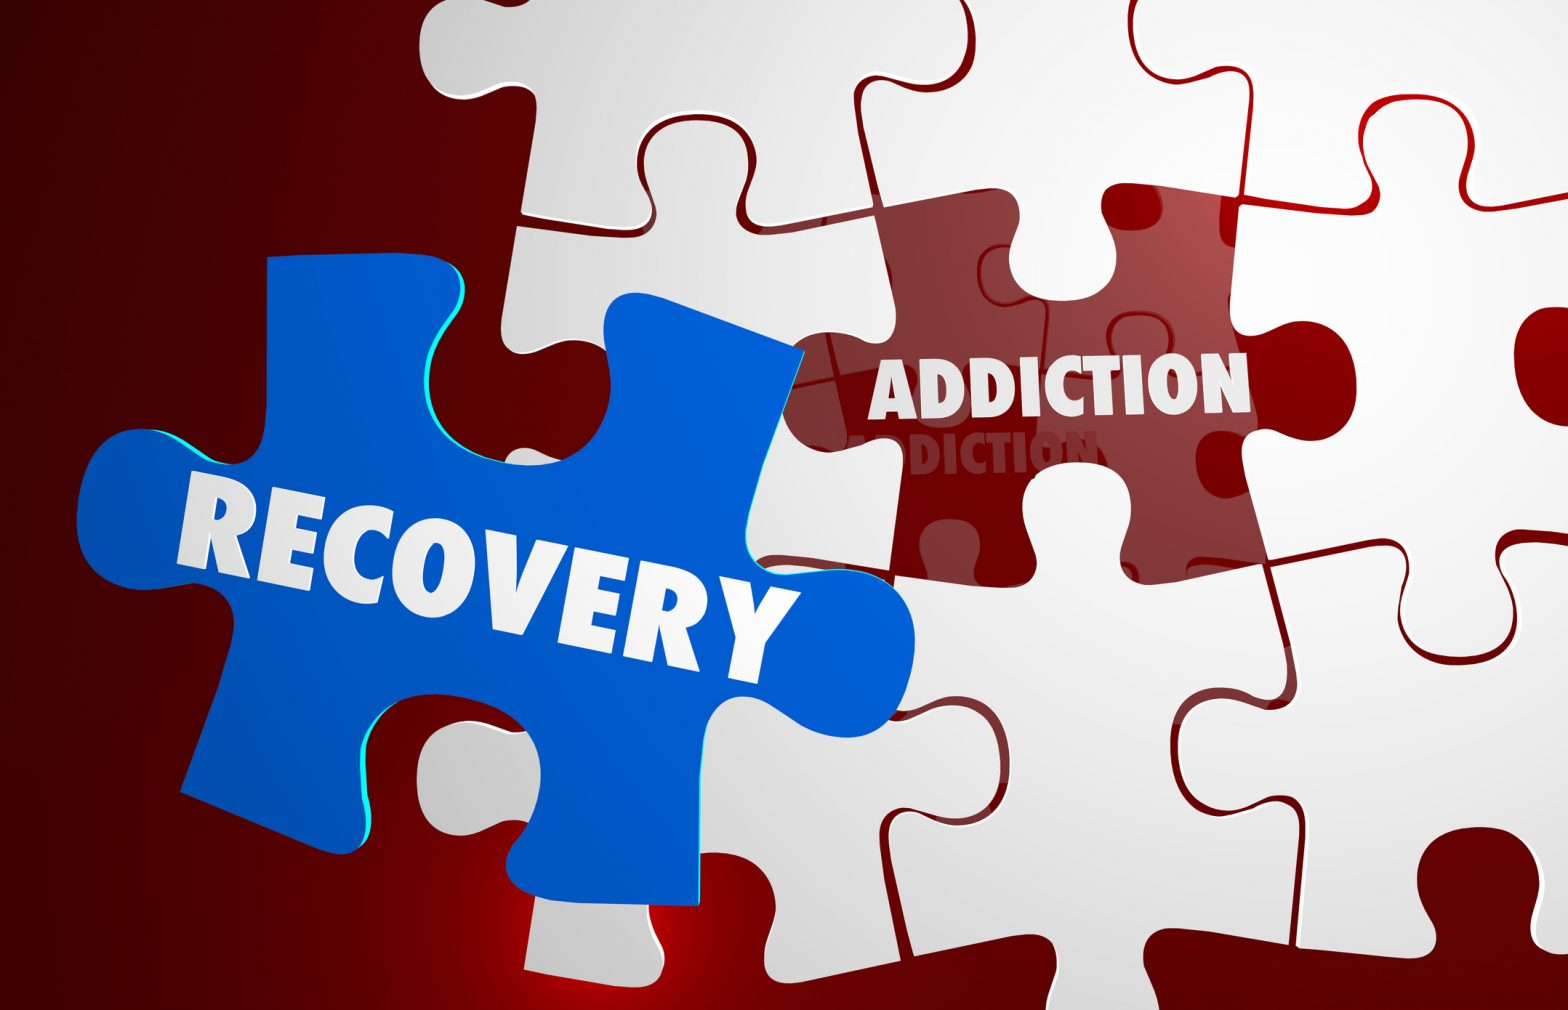 Addiction Recovery Illustration